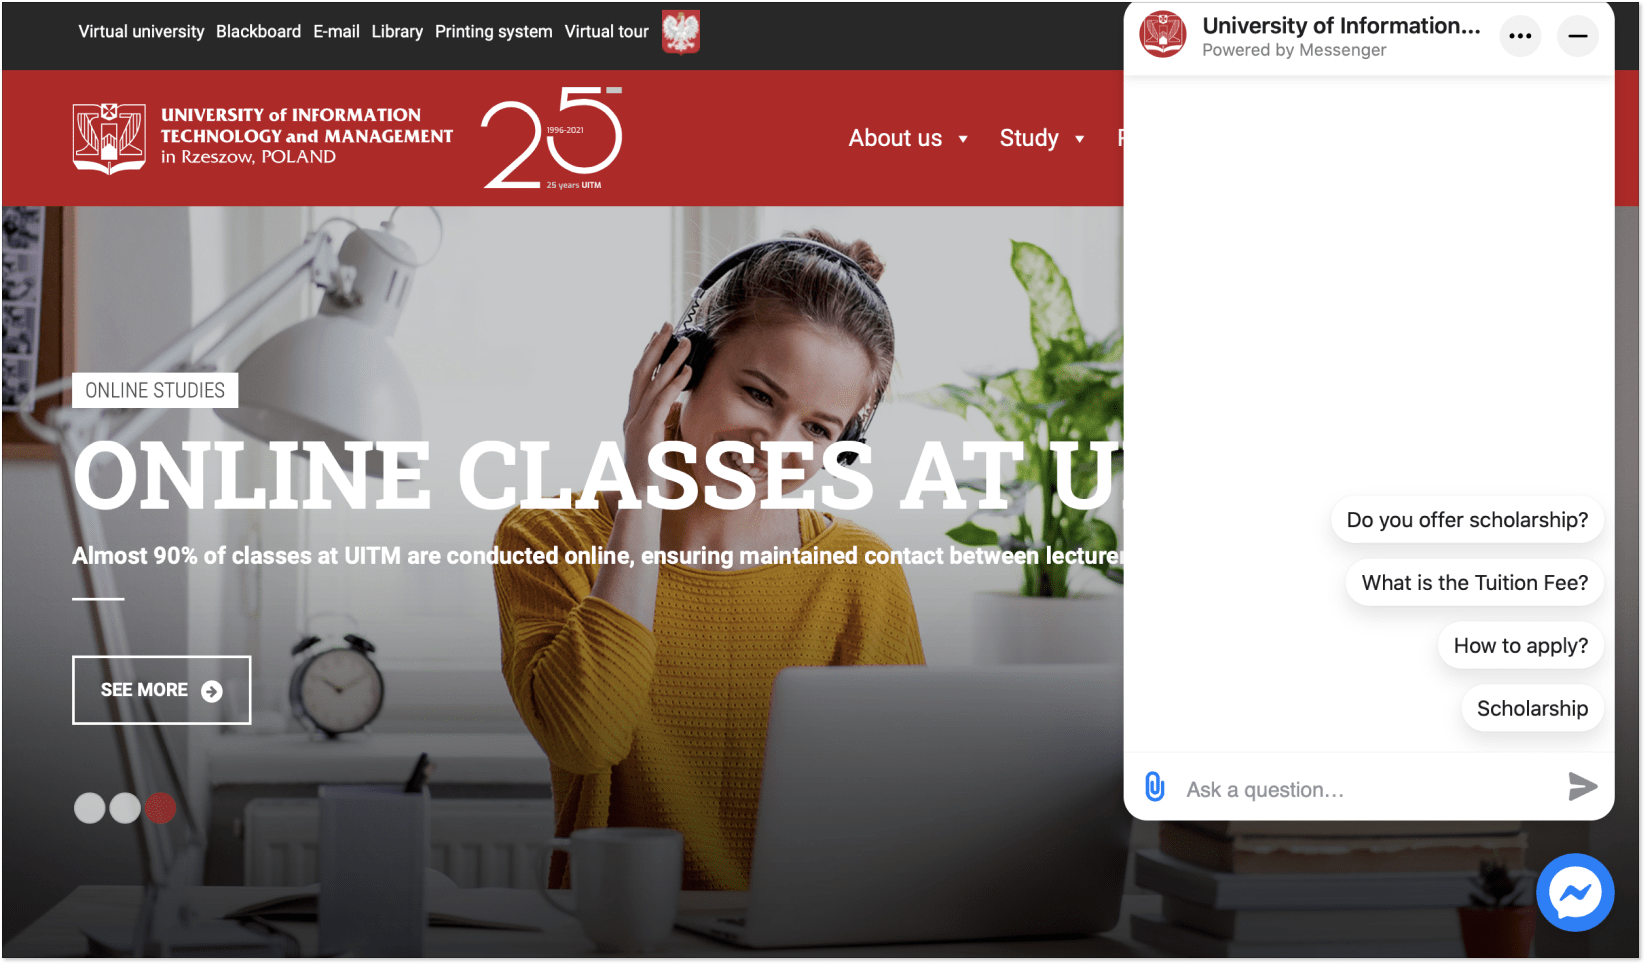 Live Messenger on the UITM landing page